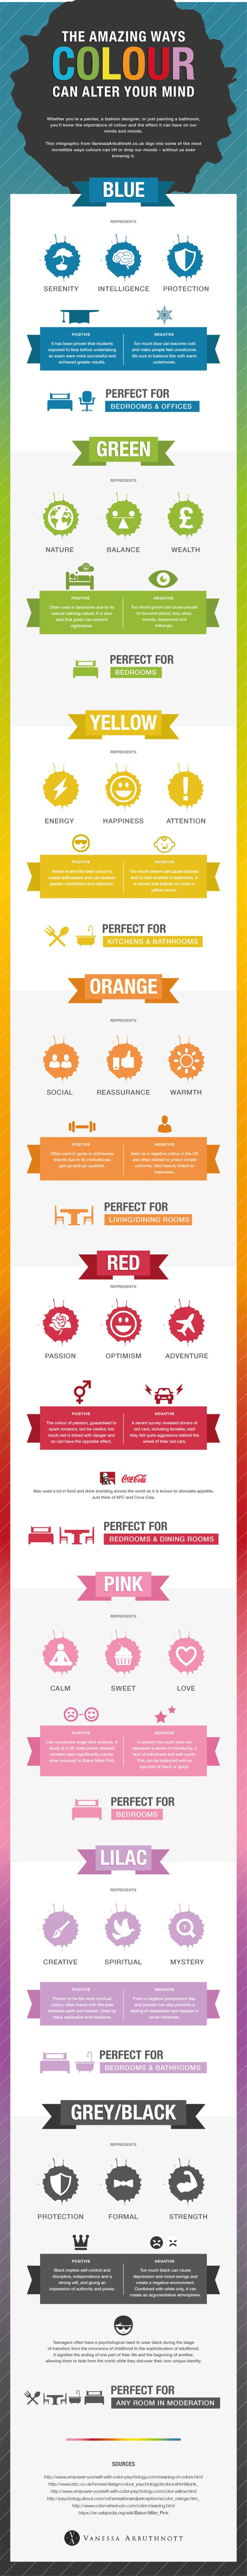 The Amazing Ways Colours Can Alter Your Mind #infographic #webdesign                                                                                                                                                                                 More